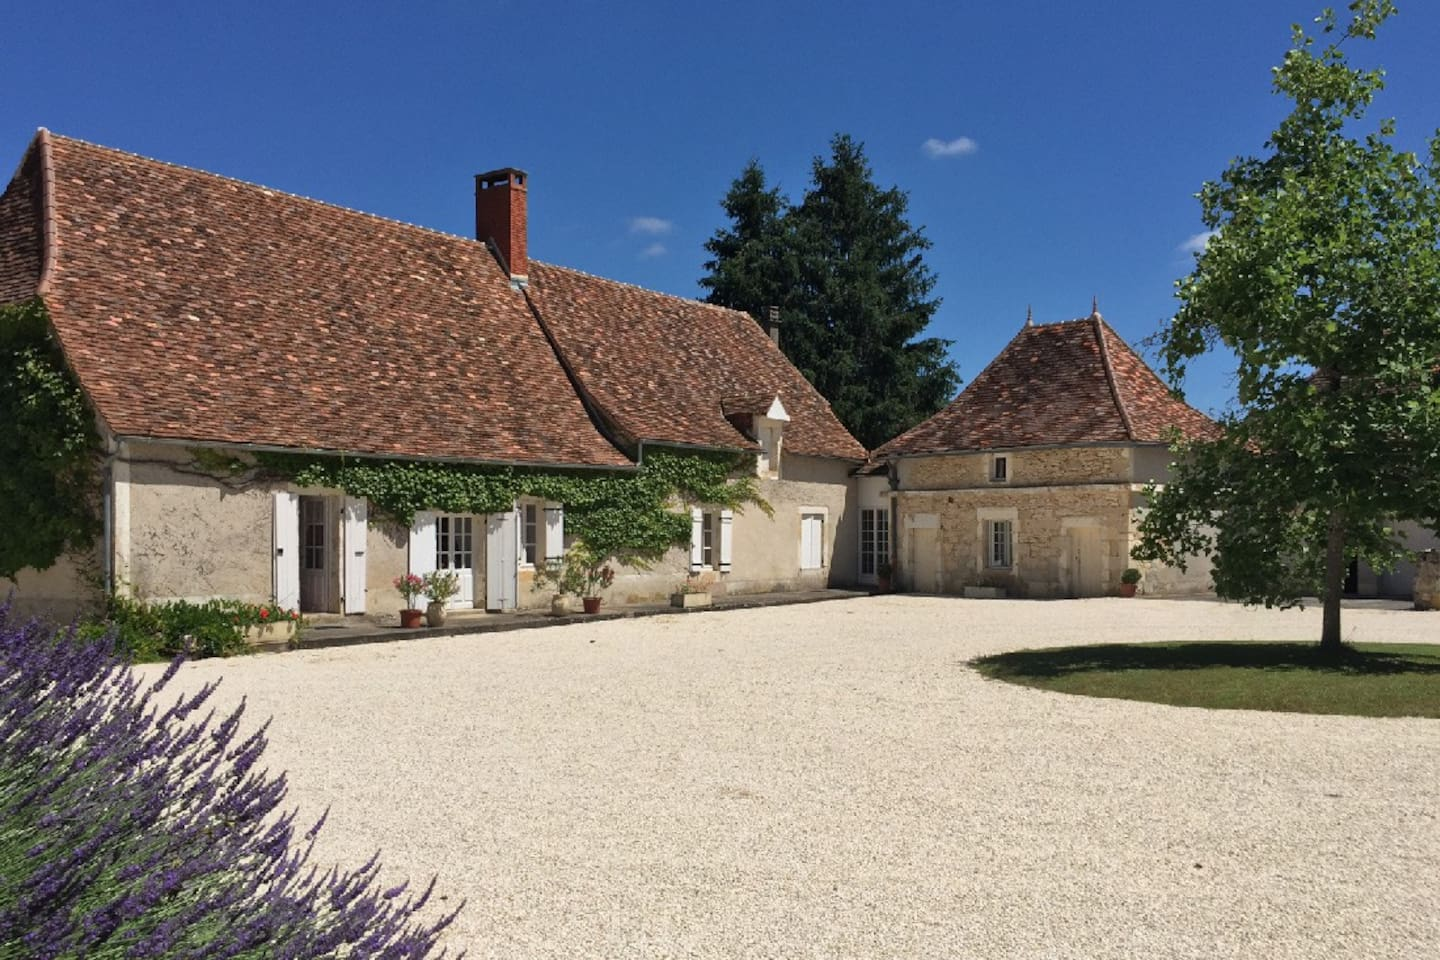 All on one level, La Ferme is very well suited to families with young children and those who do not like too many steps.